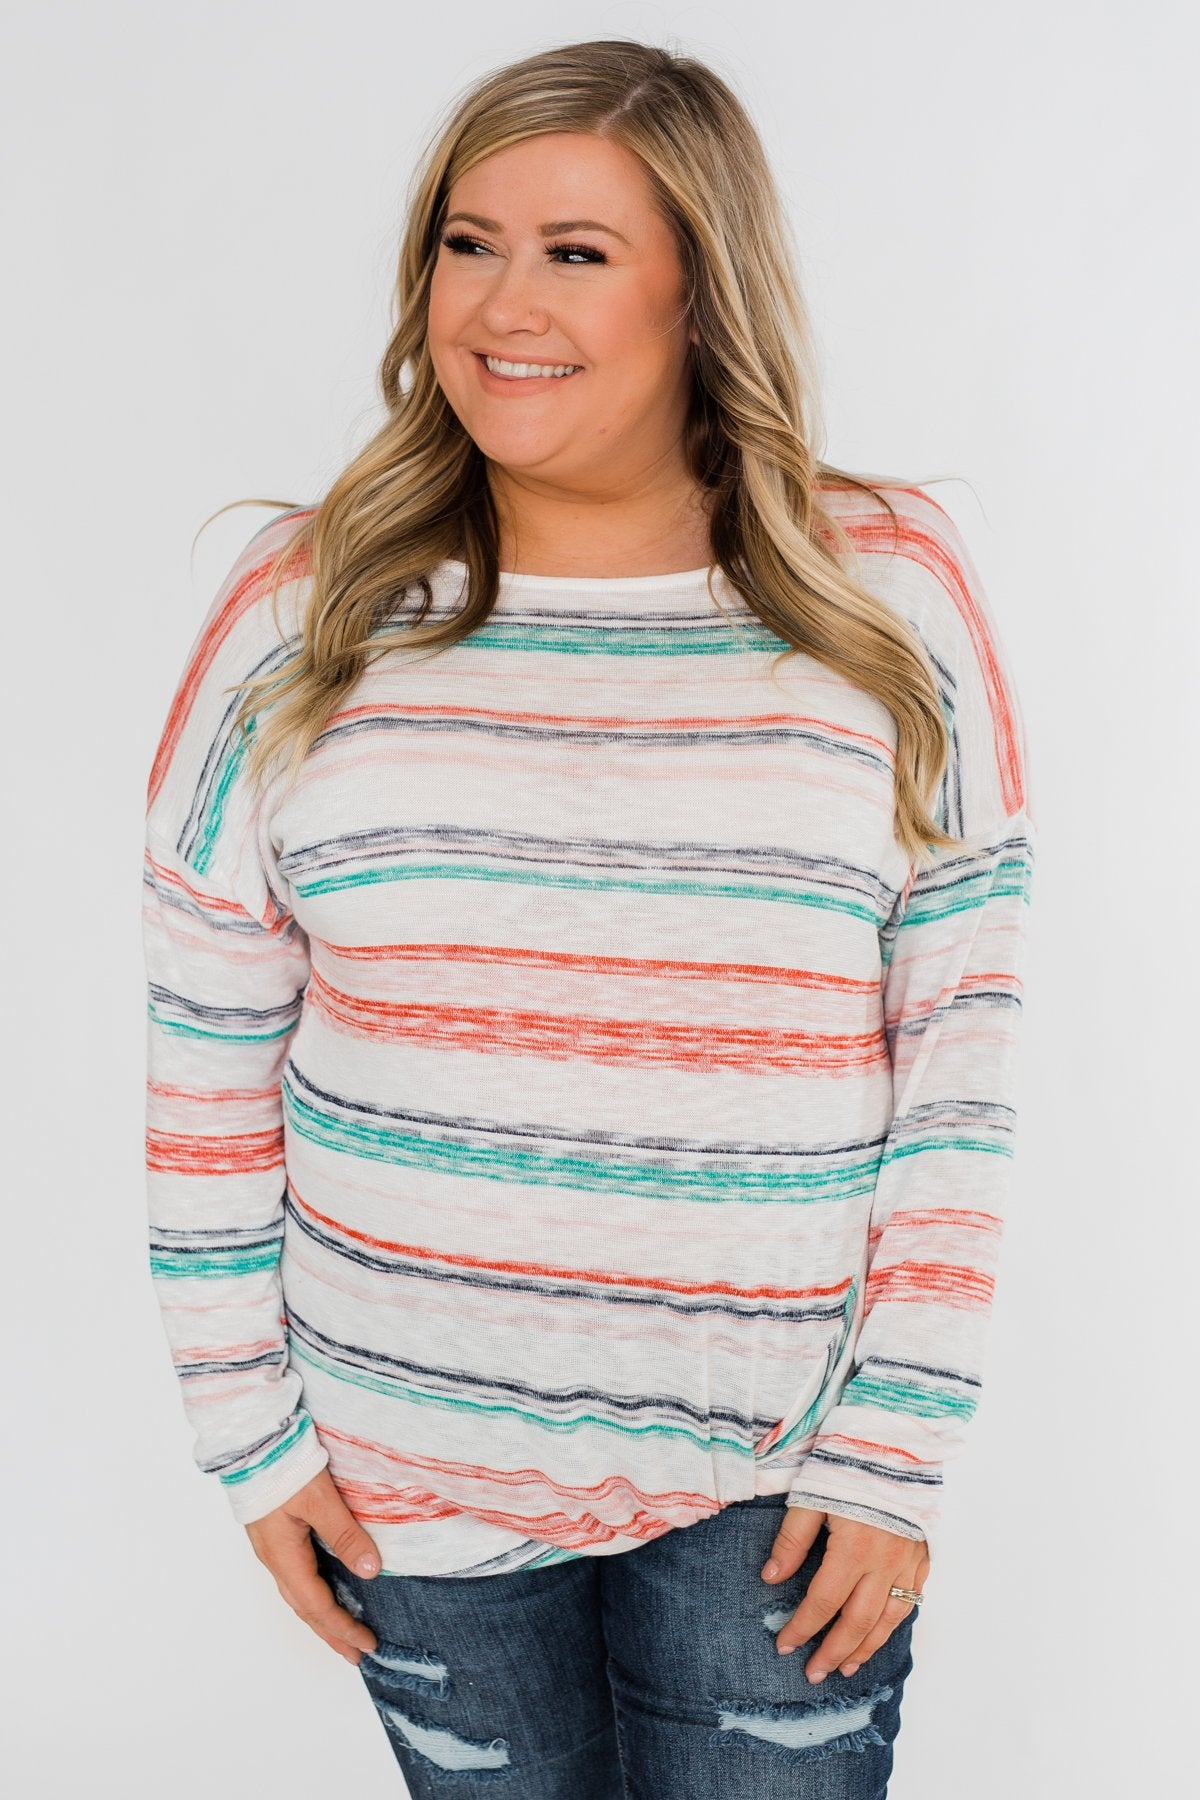 Horizon Views Striped Dolman Sleeve Top- Multi-Colored